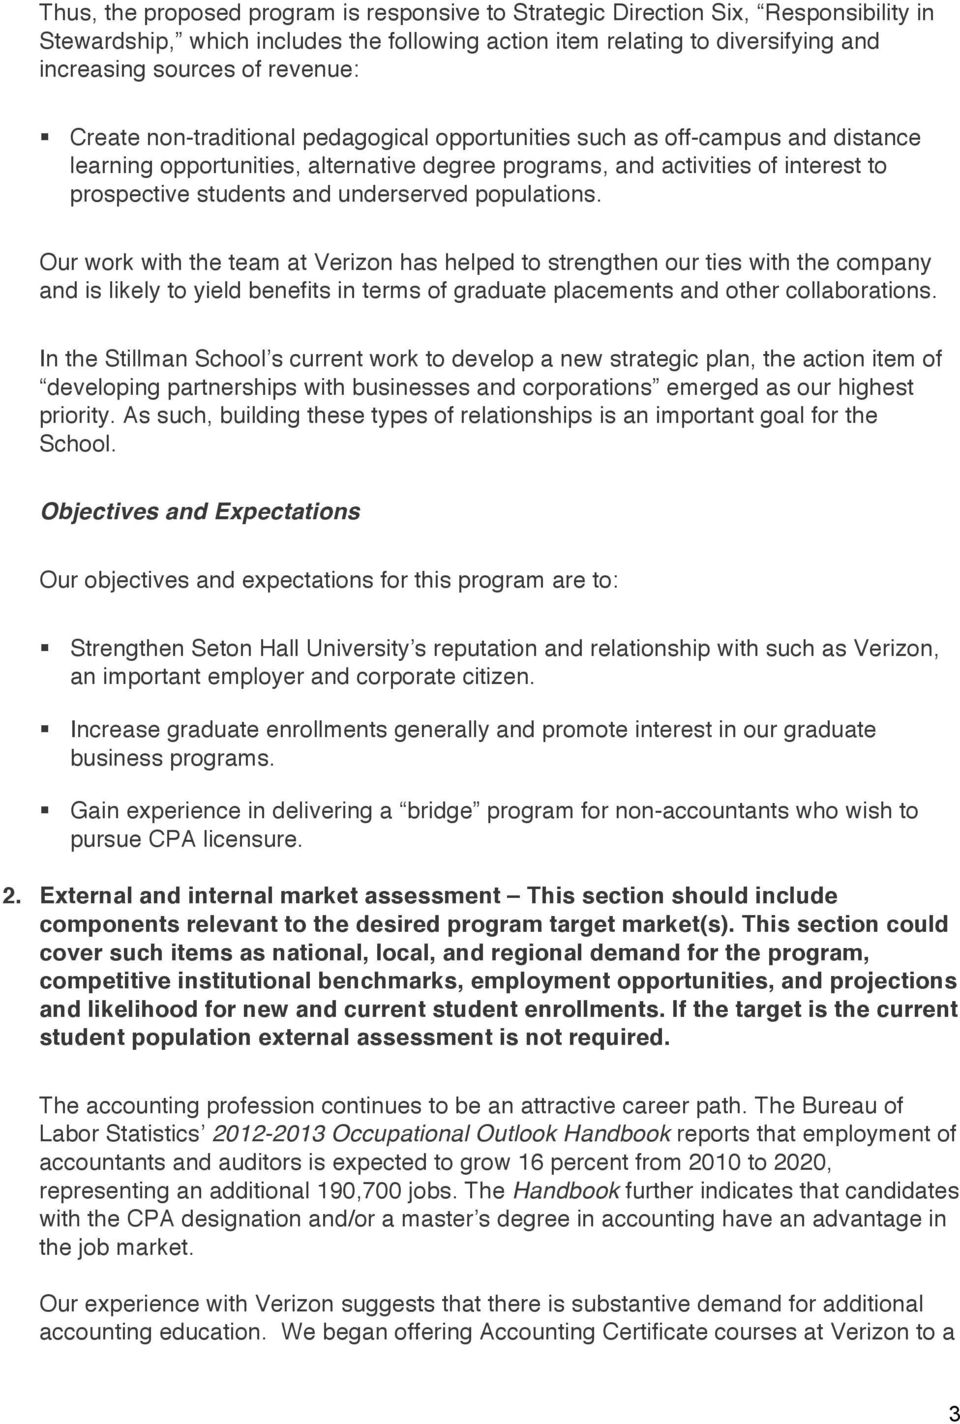 underserved populations. Our work with the team at Verizon has helped to strengthen our ties with the company and is likely to yield benefits in terms of graduate placements and other collaborations.